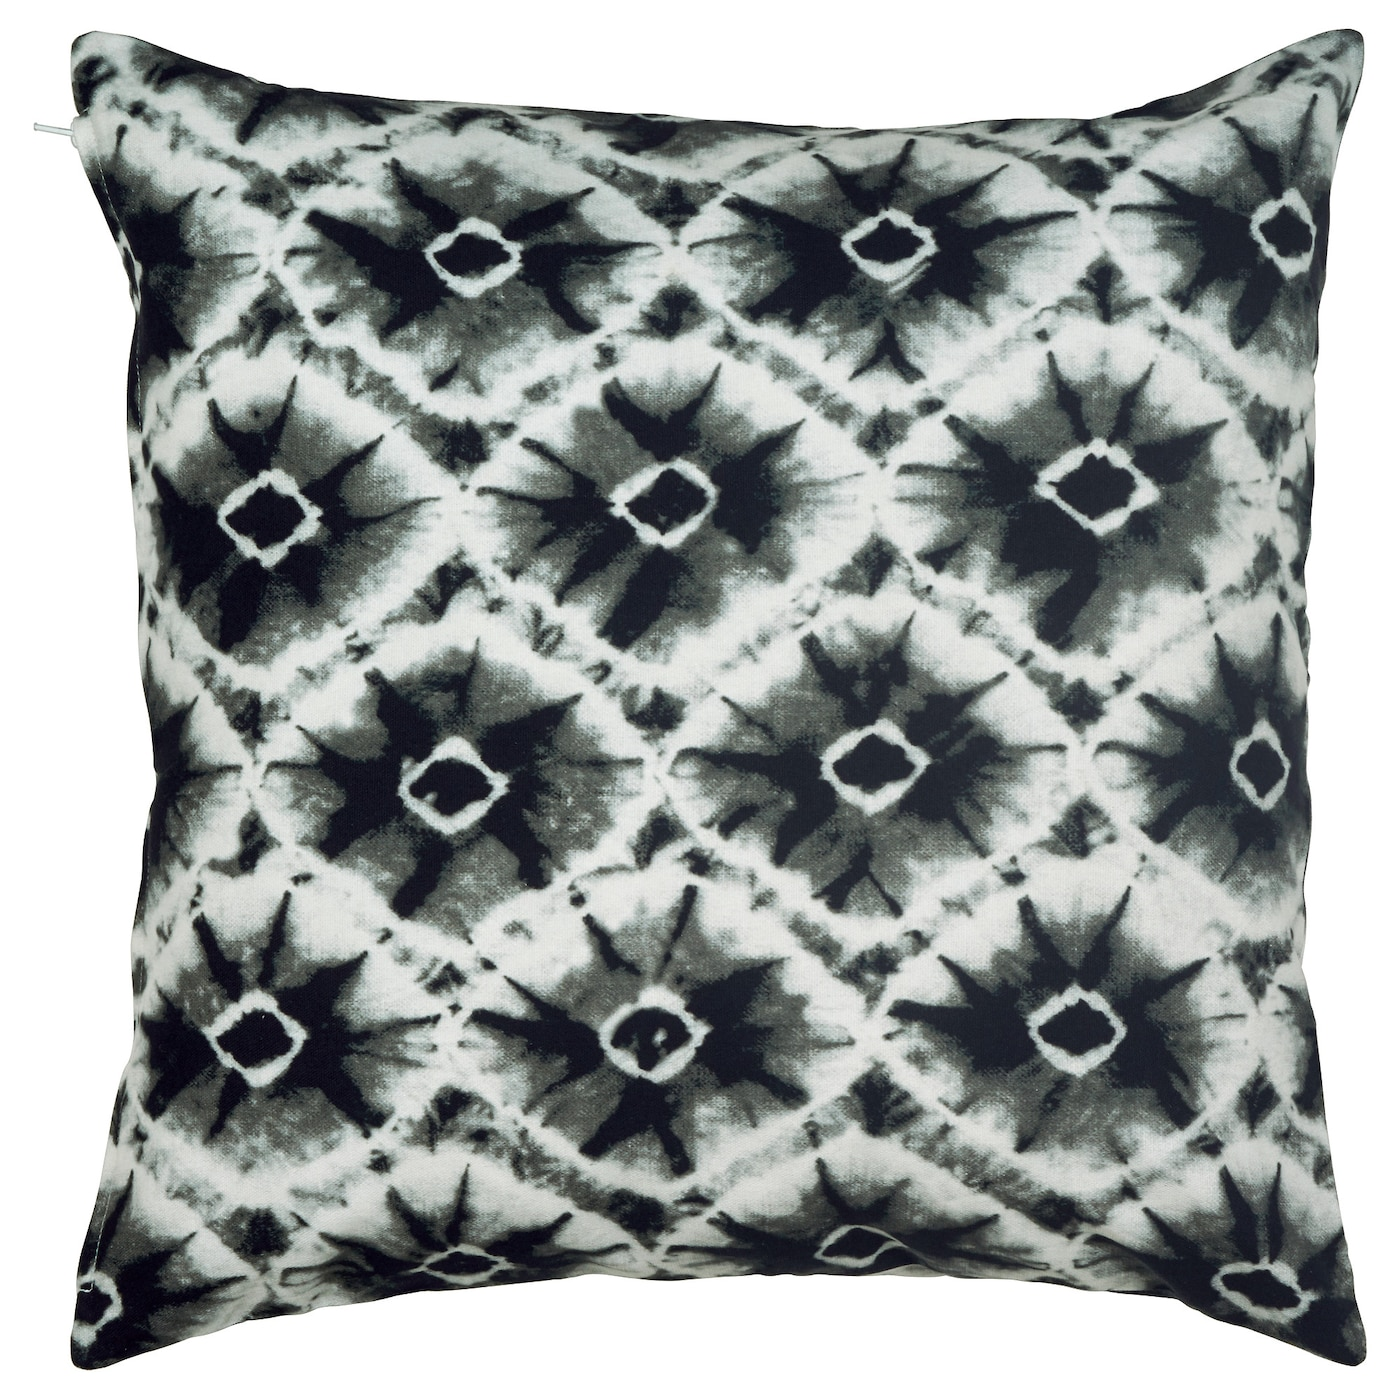 Cushion Covers & Cushion Covers